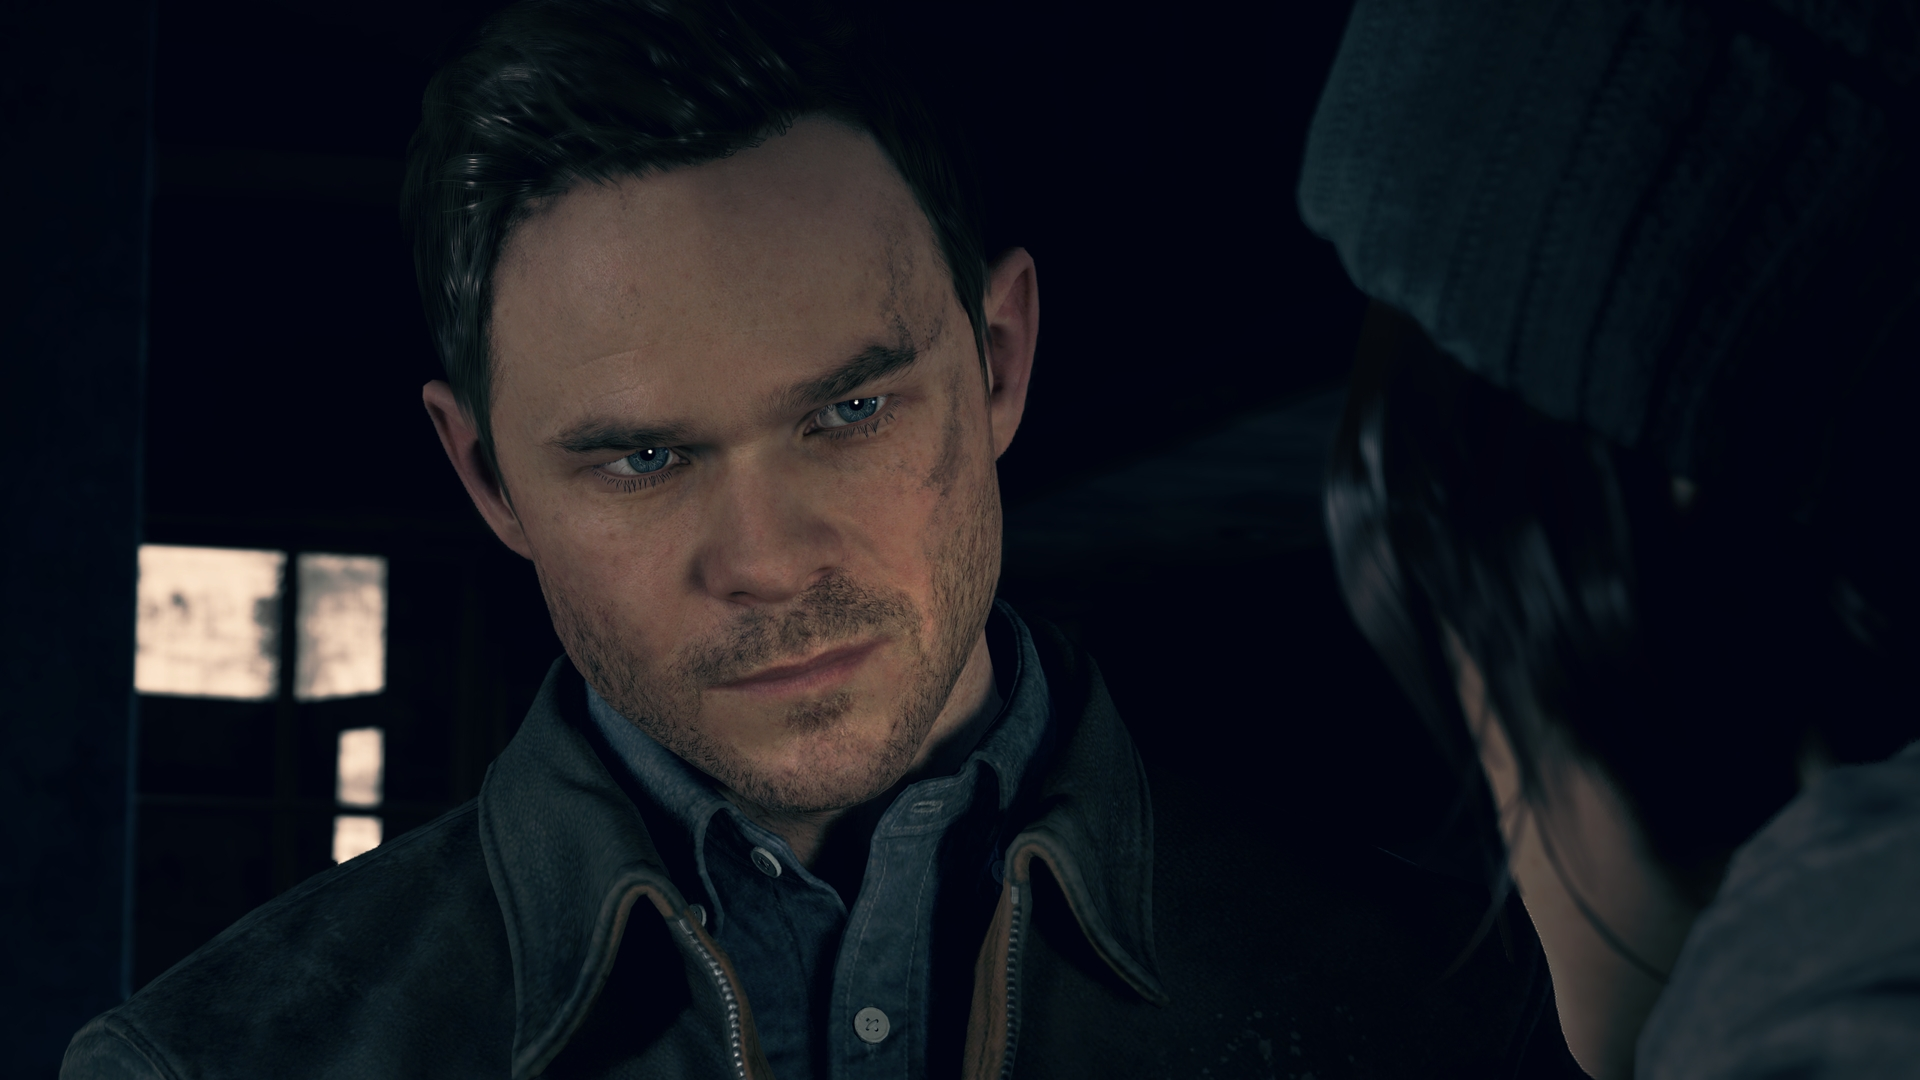 In 'Quantum Break' players take control of Jack Joyce, portrayed in the game and the live-action series by 'X-Men' star Shawn Ashmore.